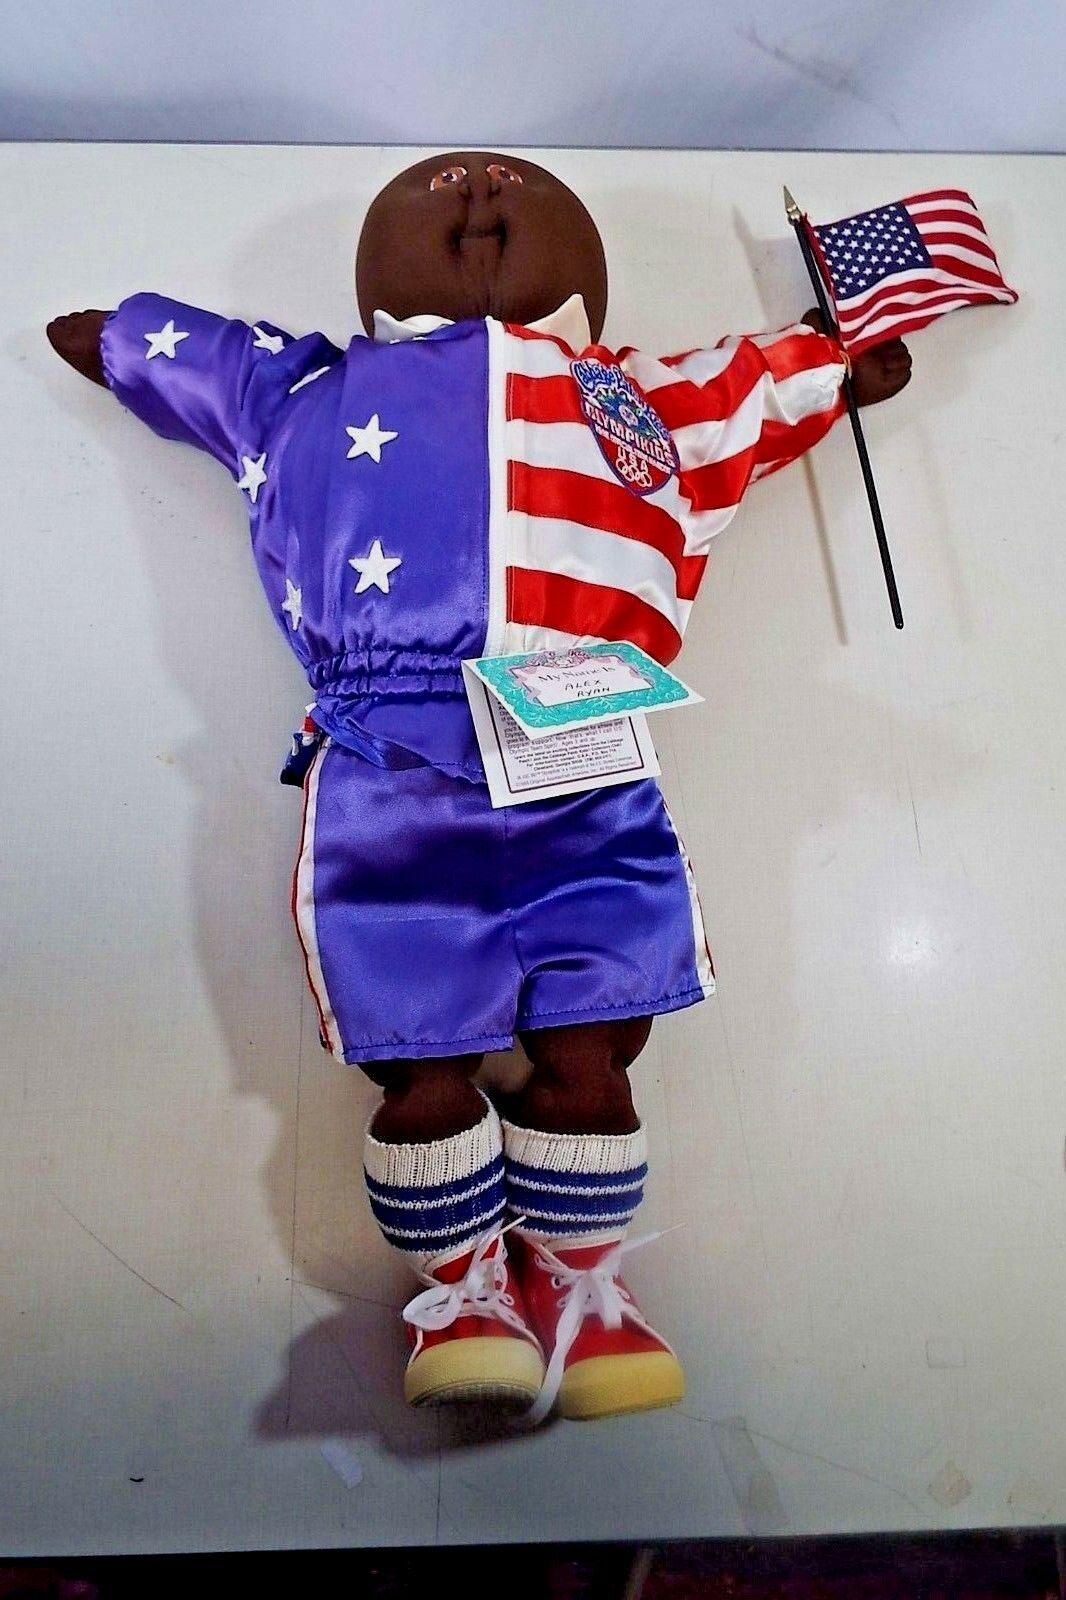 African American Cabbage Patch Kid Alex Ryan  24  1996 USA Olympic Team Mascot